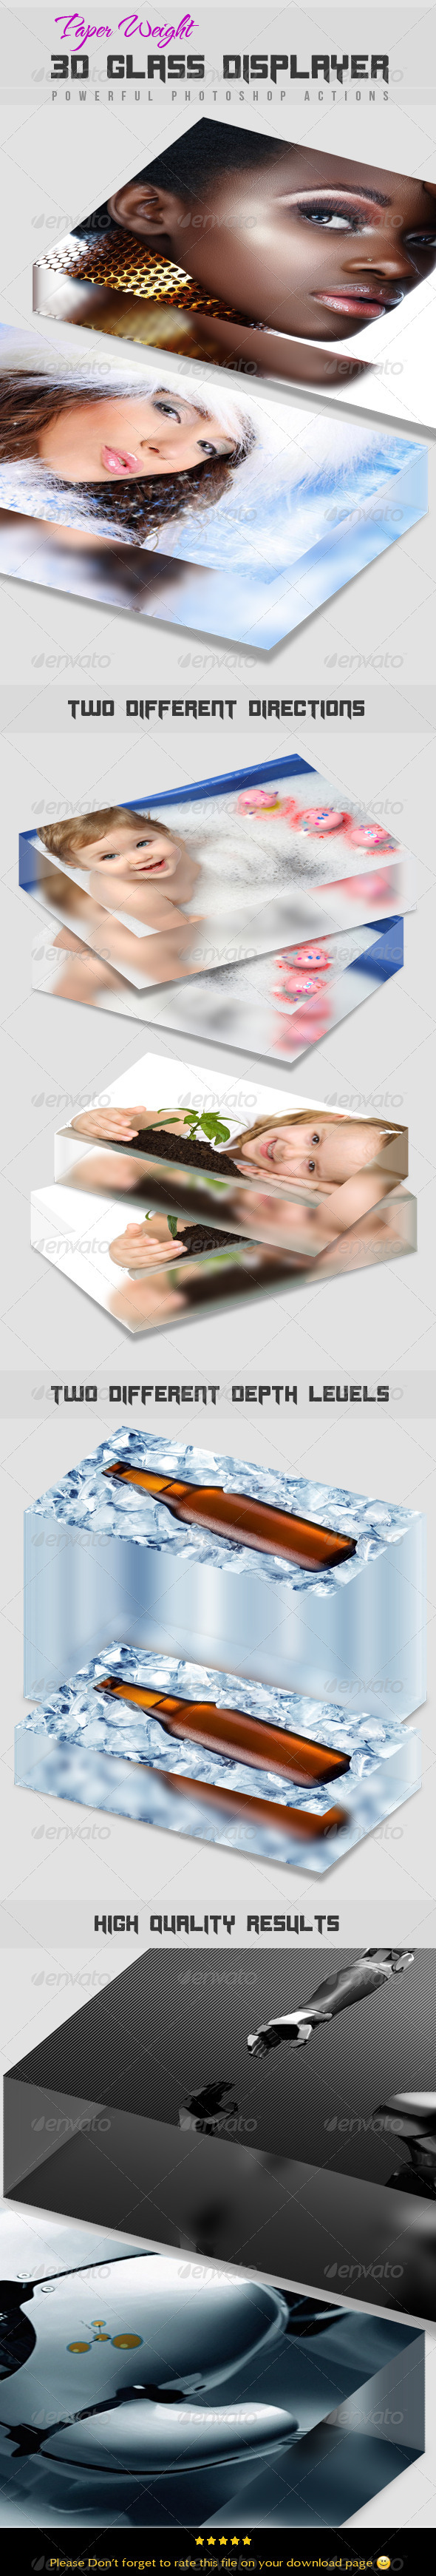 Paper Weight 3D Glass Displayer - Photo Effects Actions